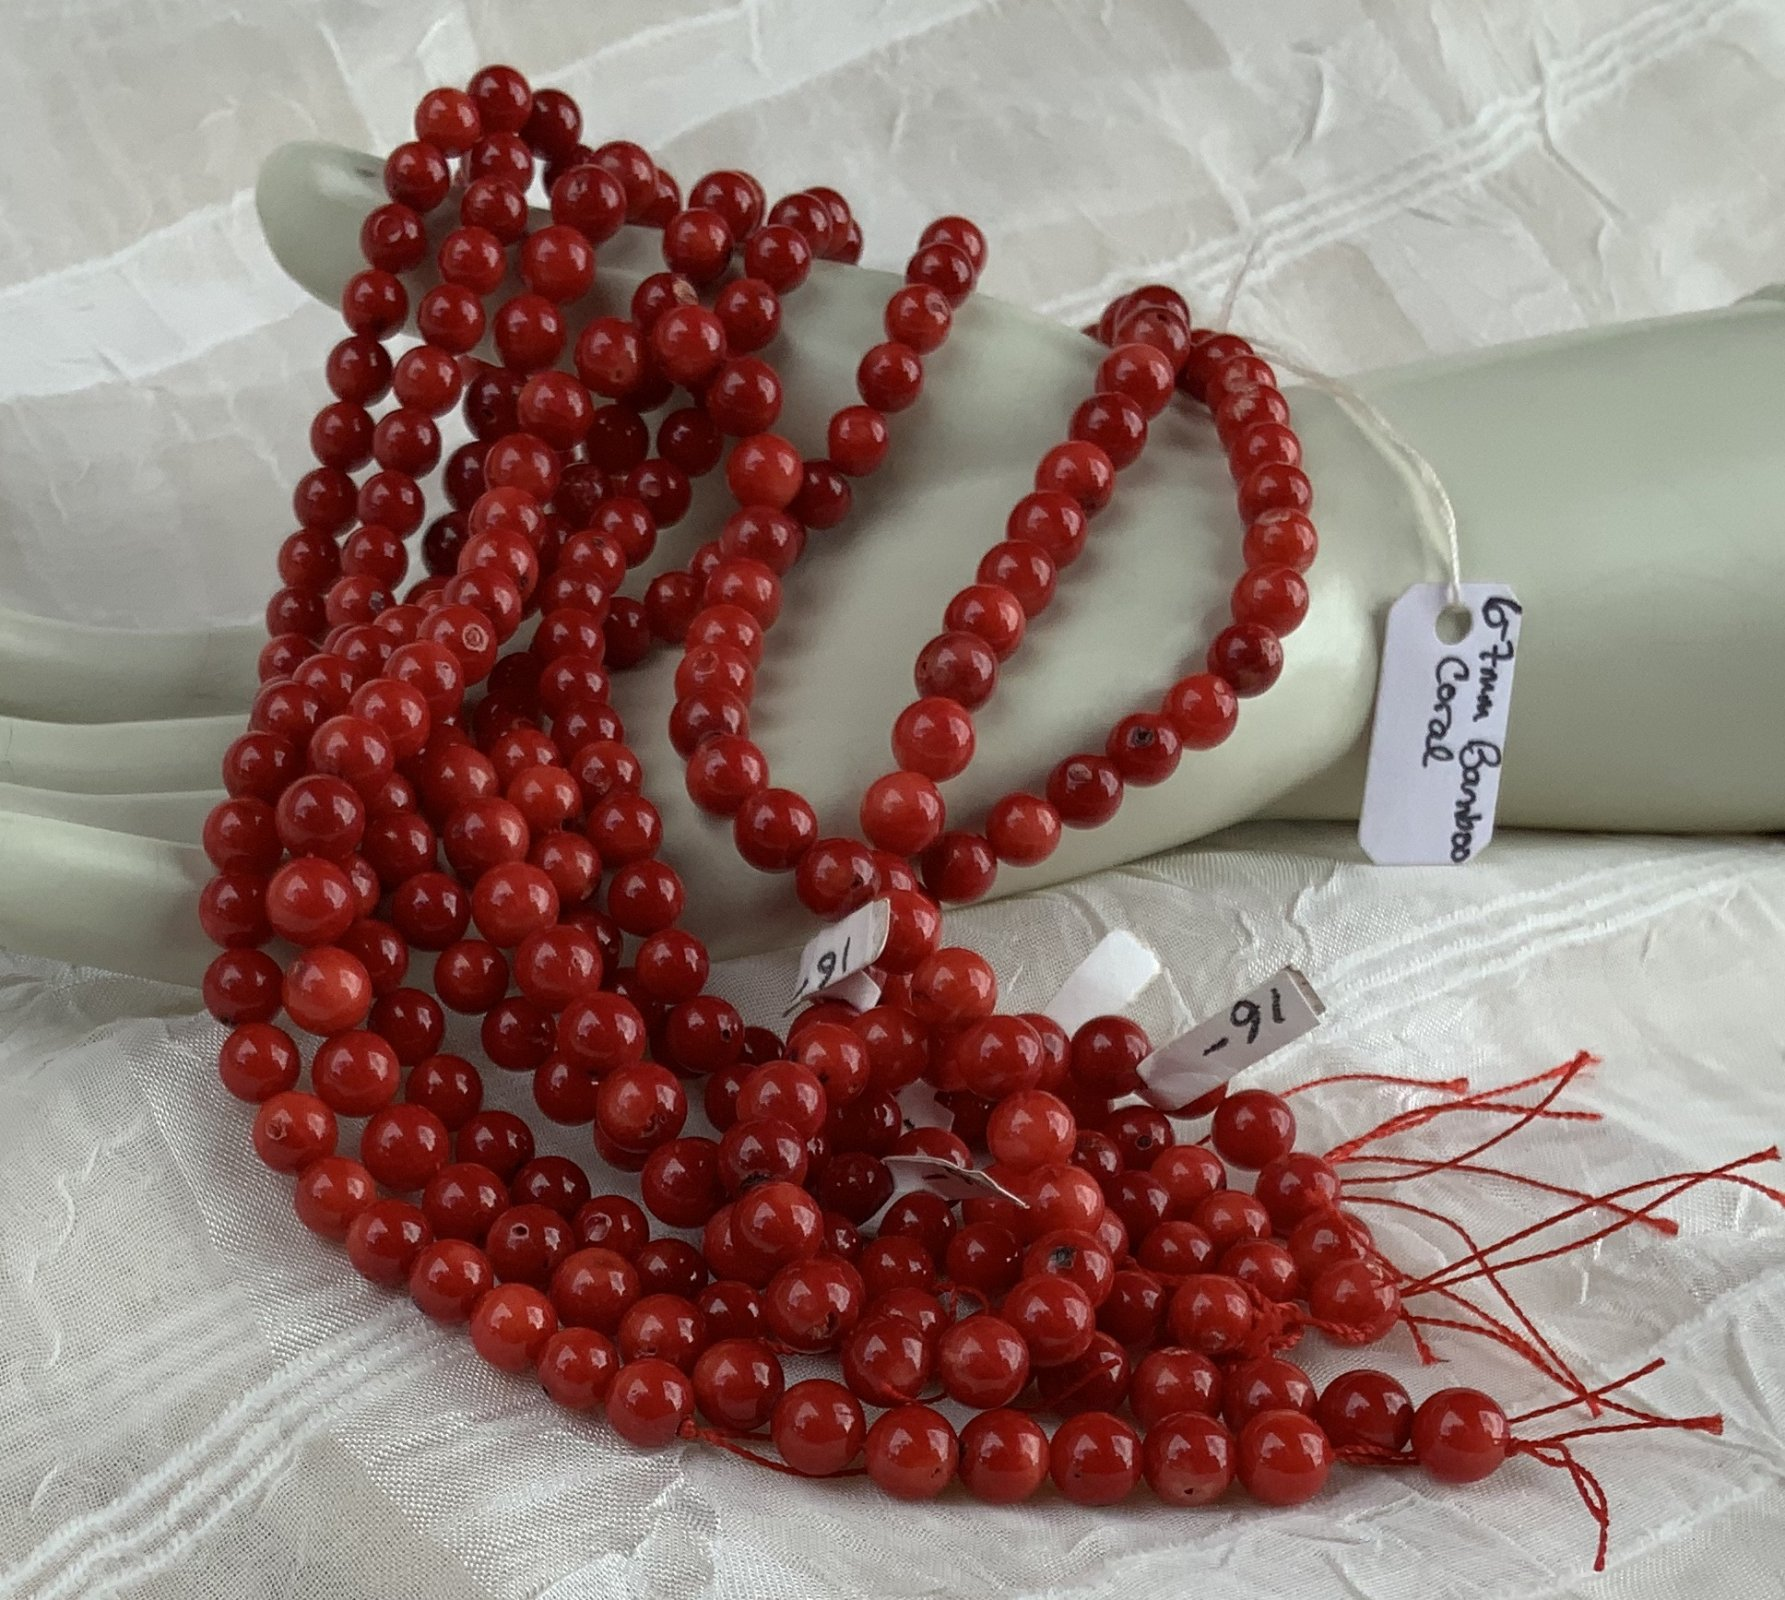 Bamboo Coral 6-7mm Round